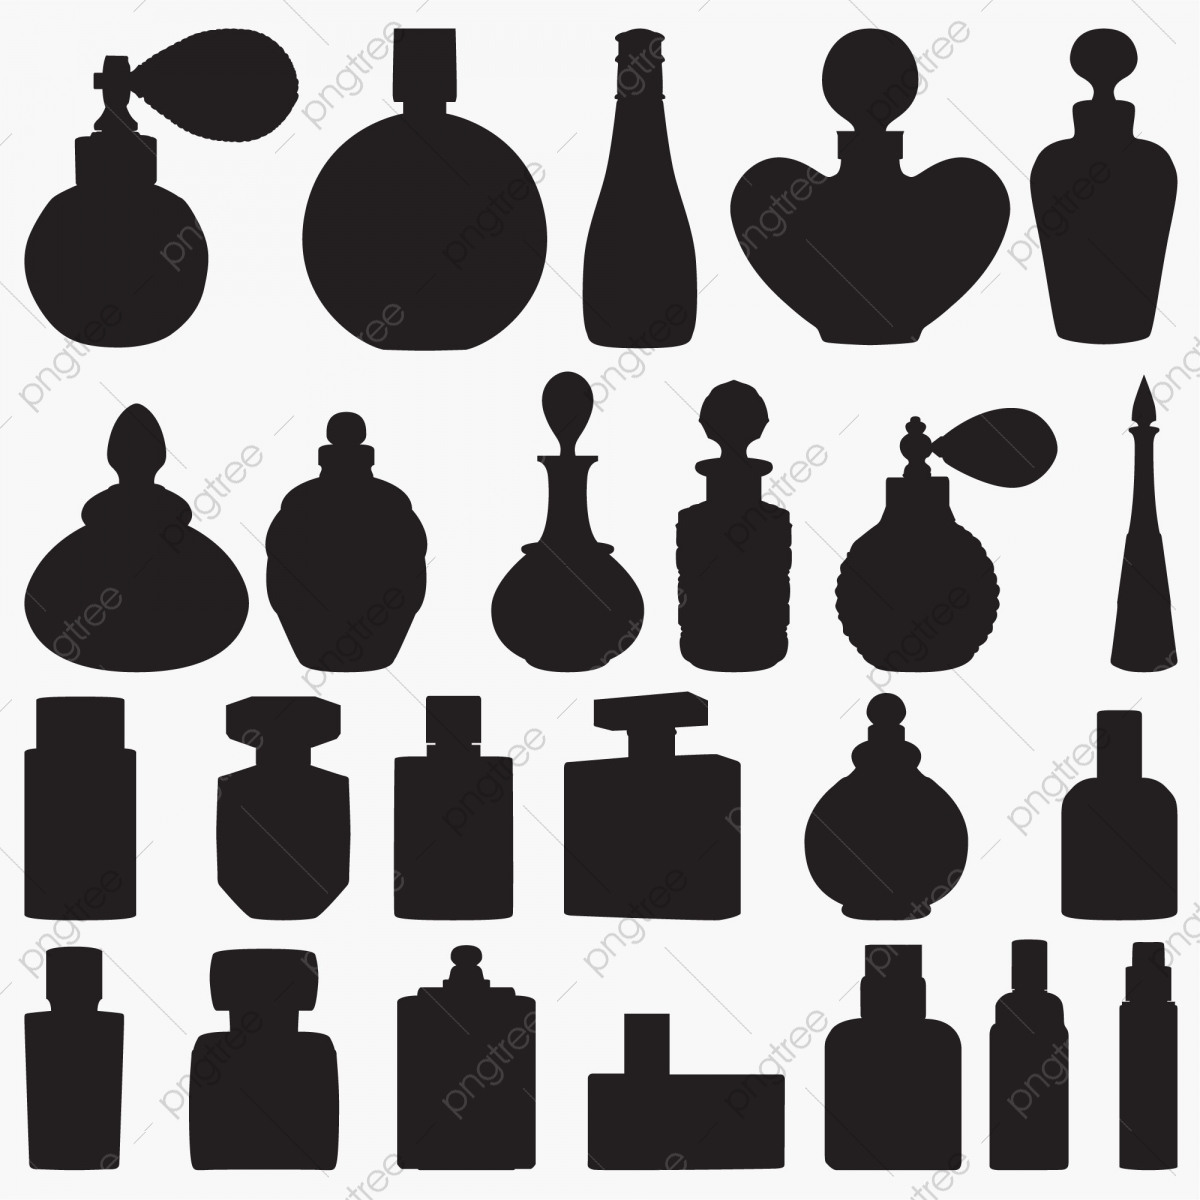 19 Old Fashioned Perfume Bottle Clipart! - The Graphics Fairy